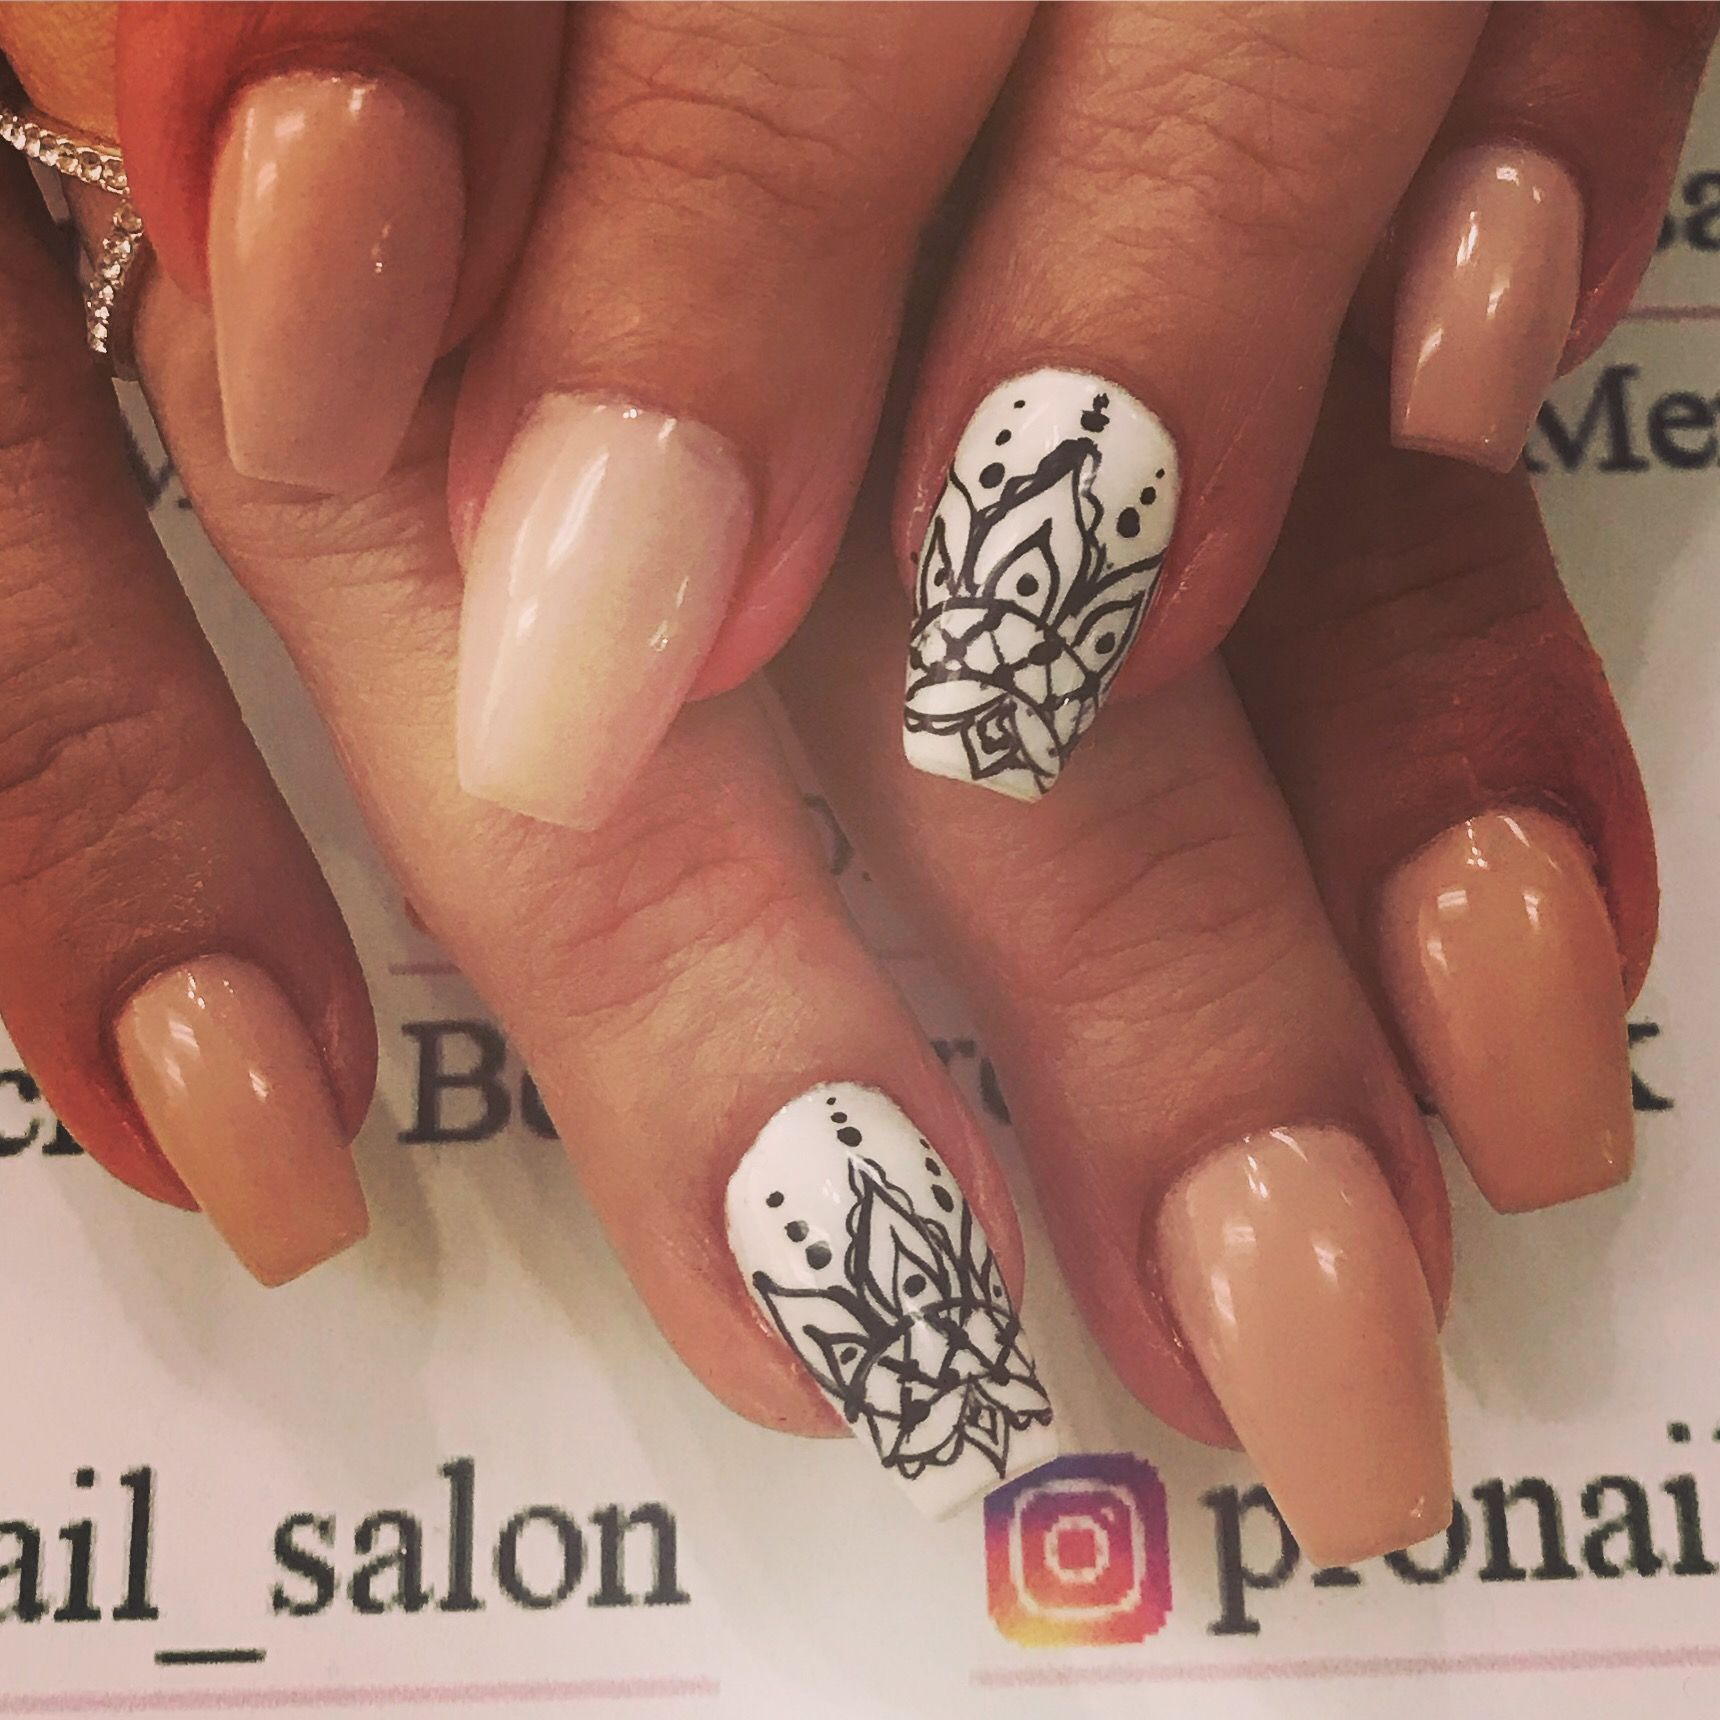 Pin by Charisse Huff Garfinkel on my nail designs Nail